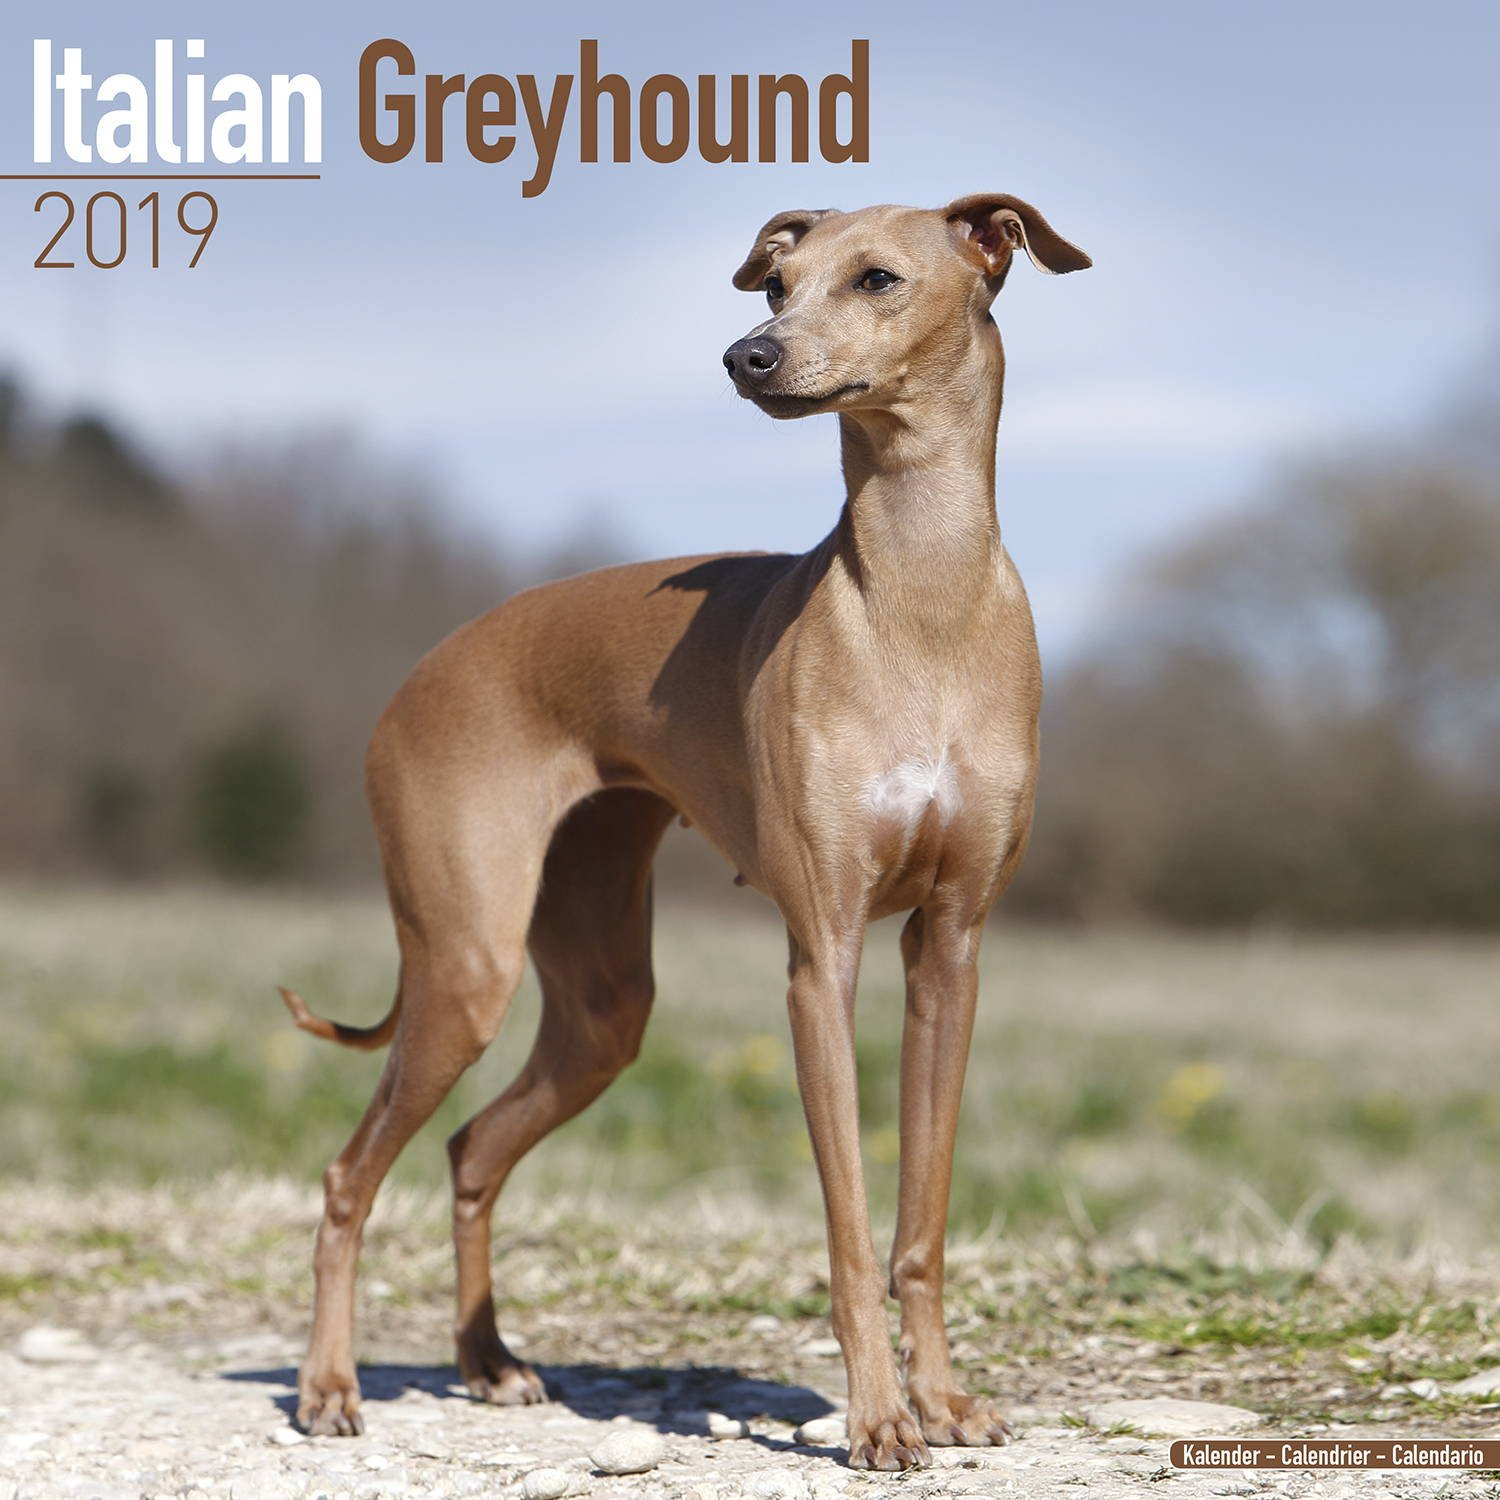 Italian Greyhound Calendar 2019 - Dog Breed Calendar - Wall Calendar 2018-2019